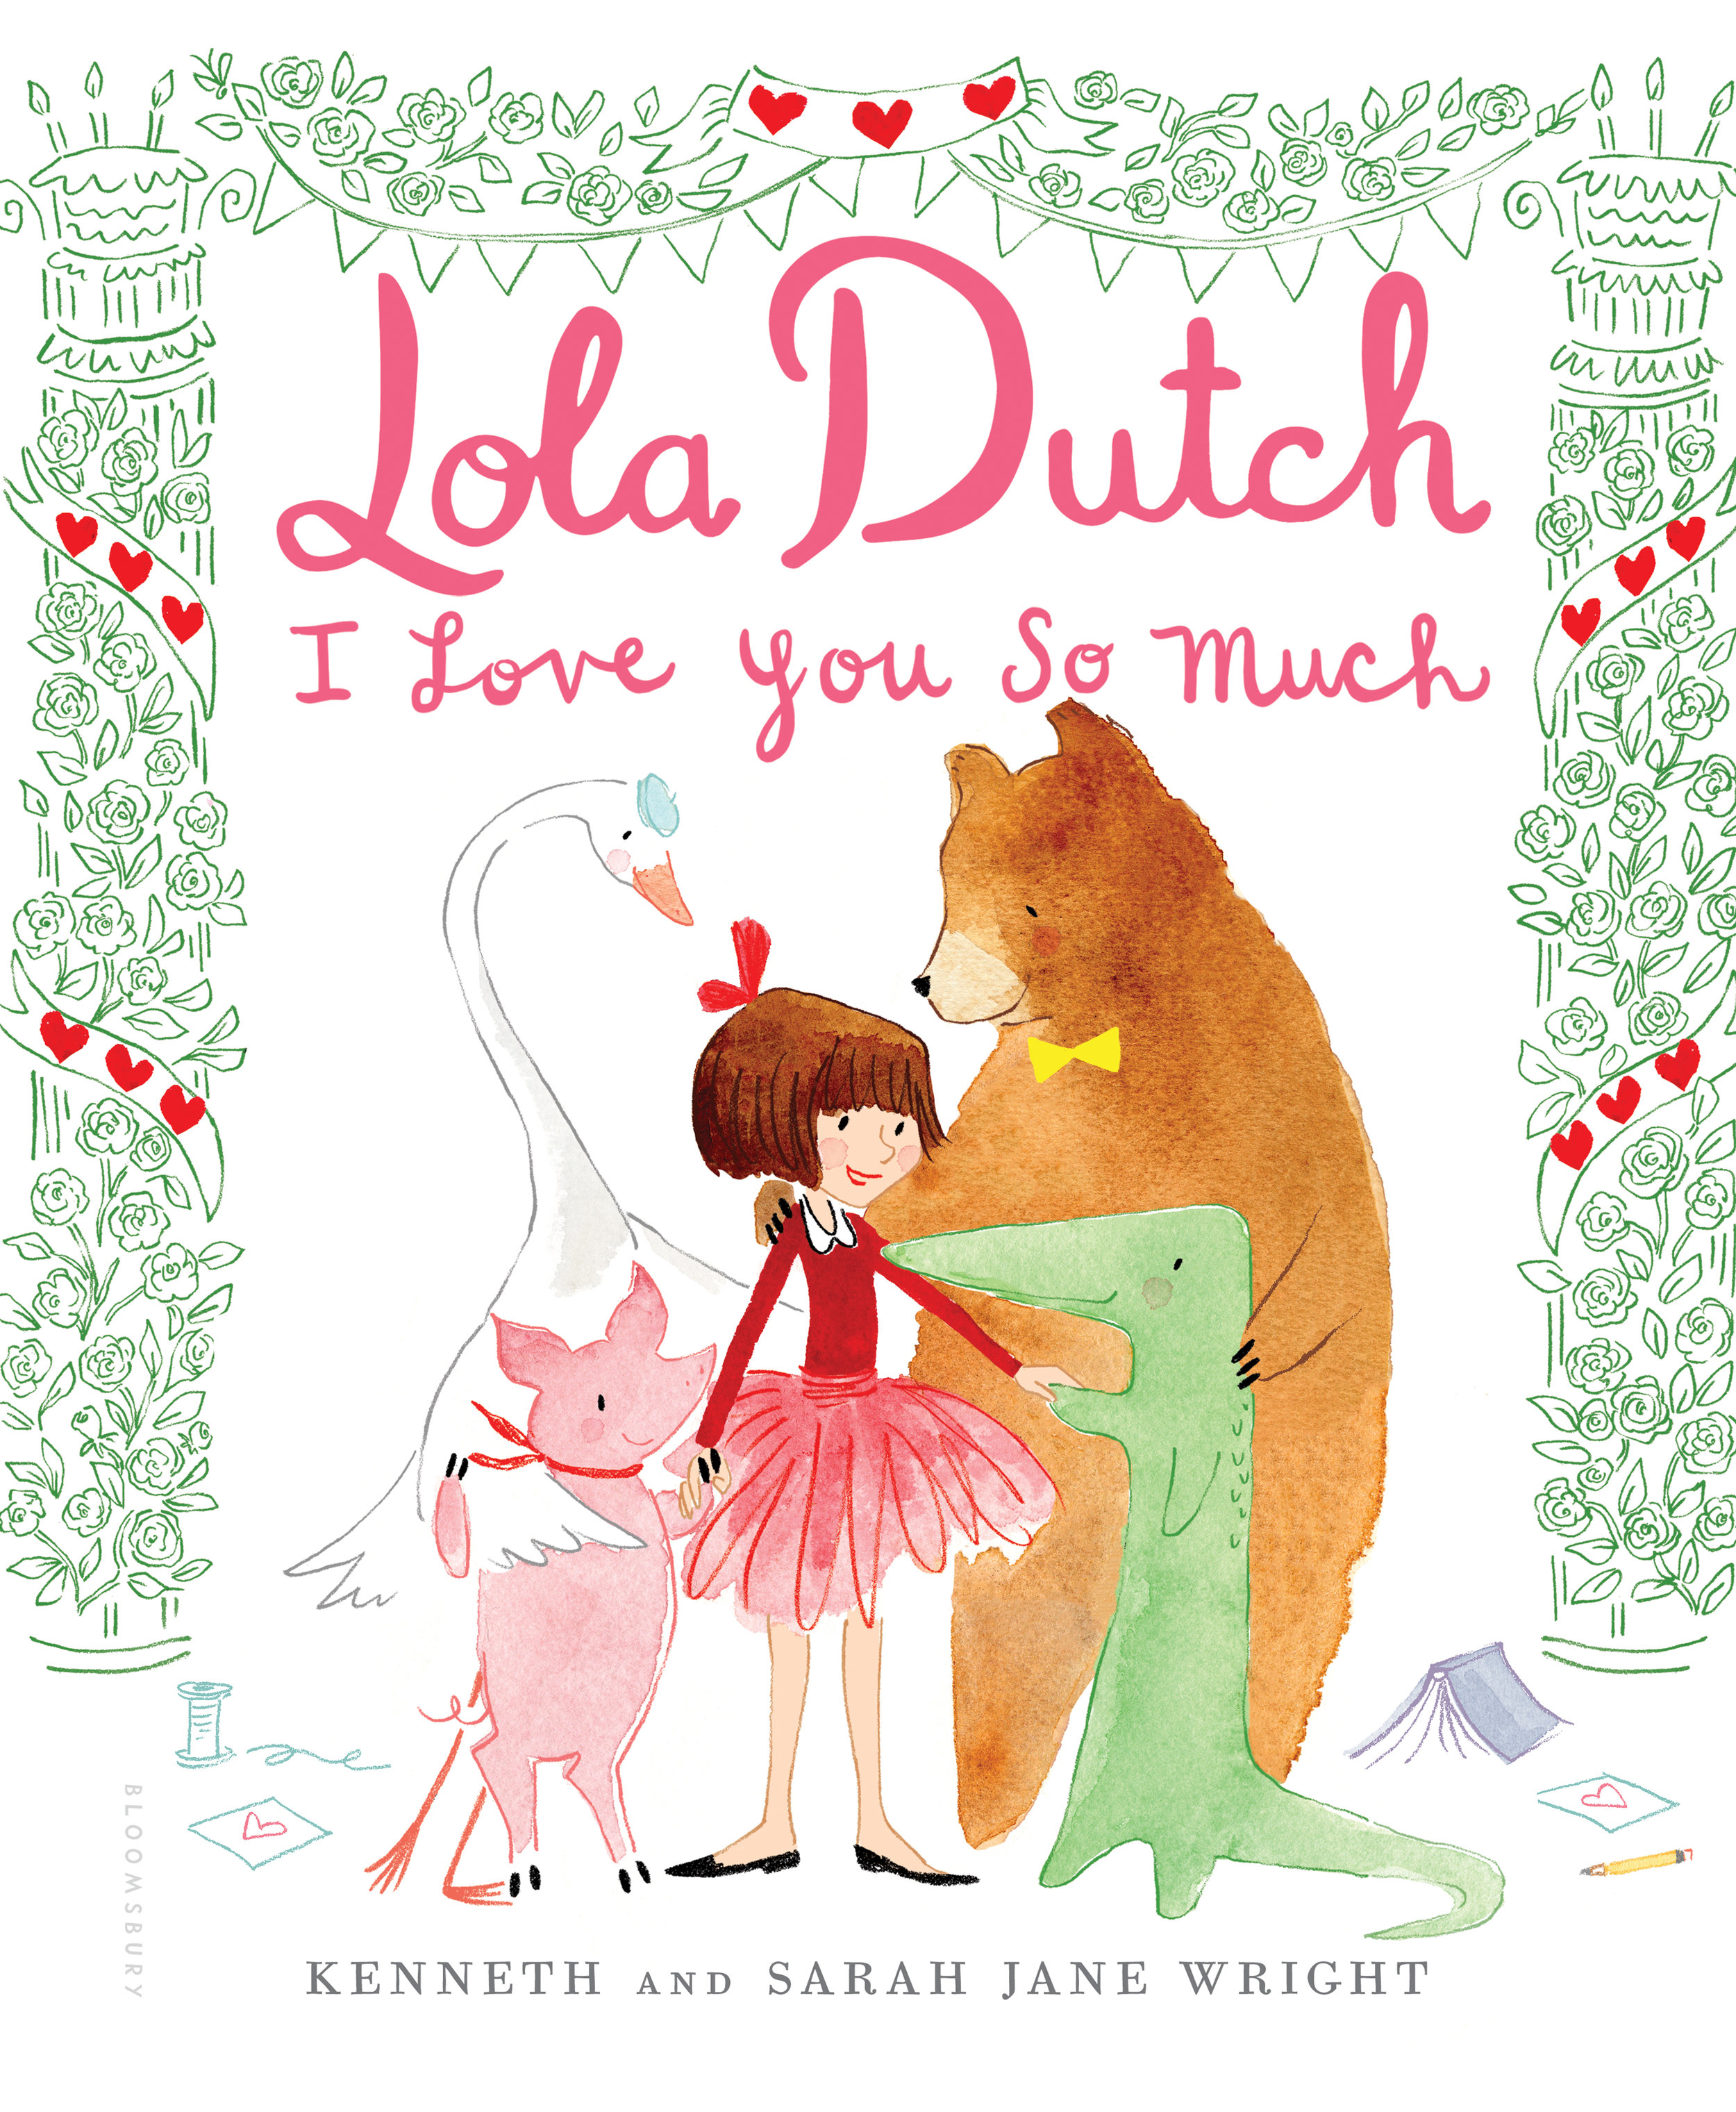 PRE-ORDER LOLA DUTCH BOOK 3  Coming January 2020